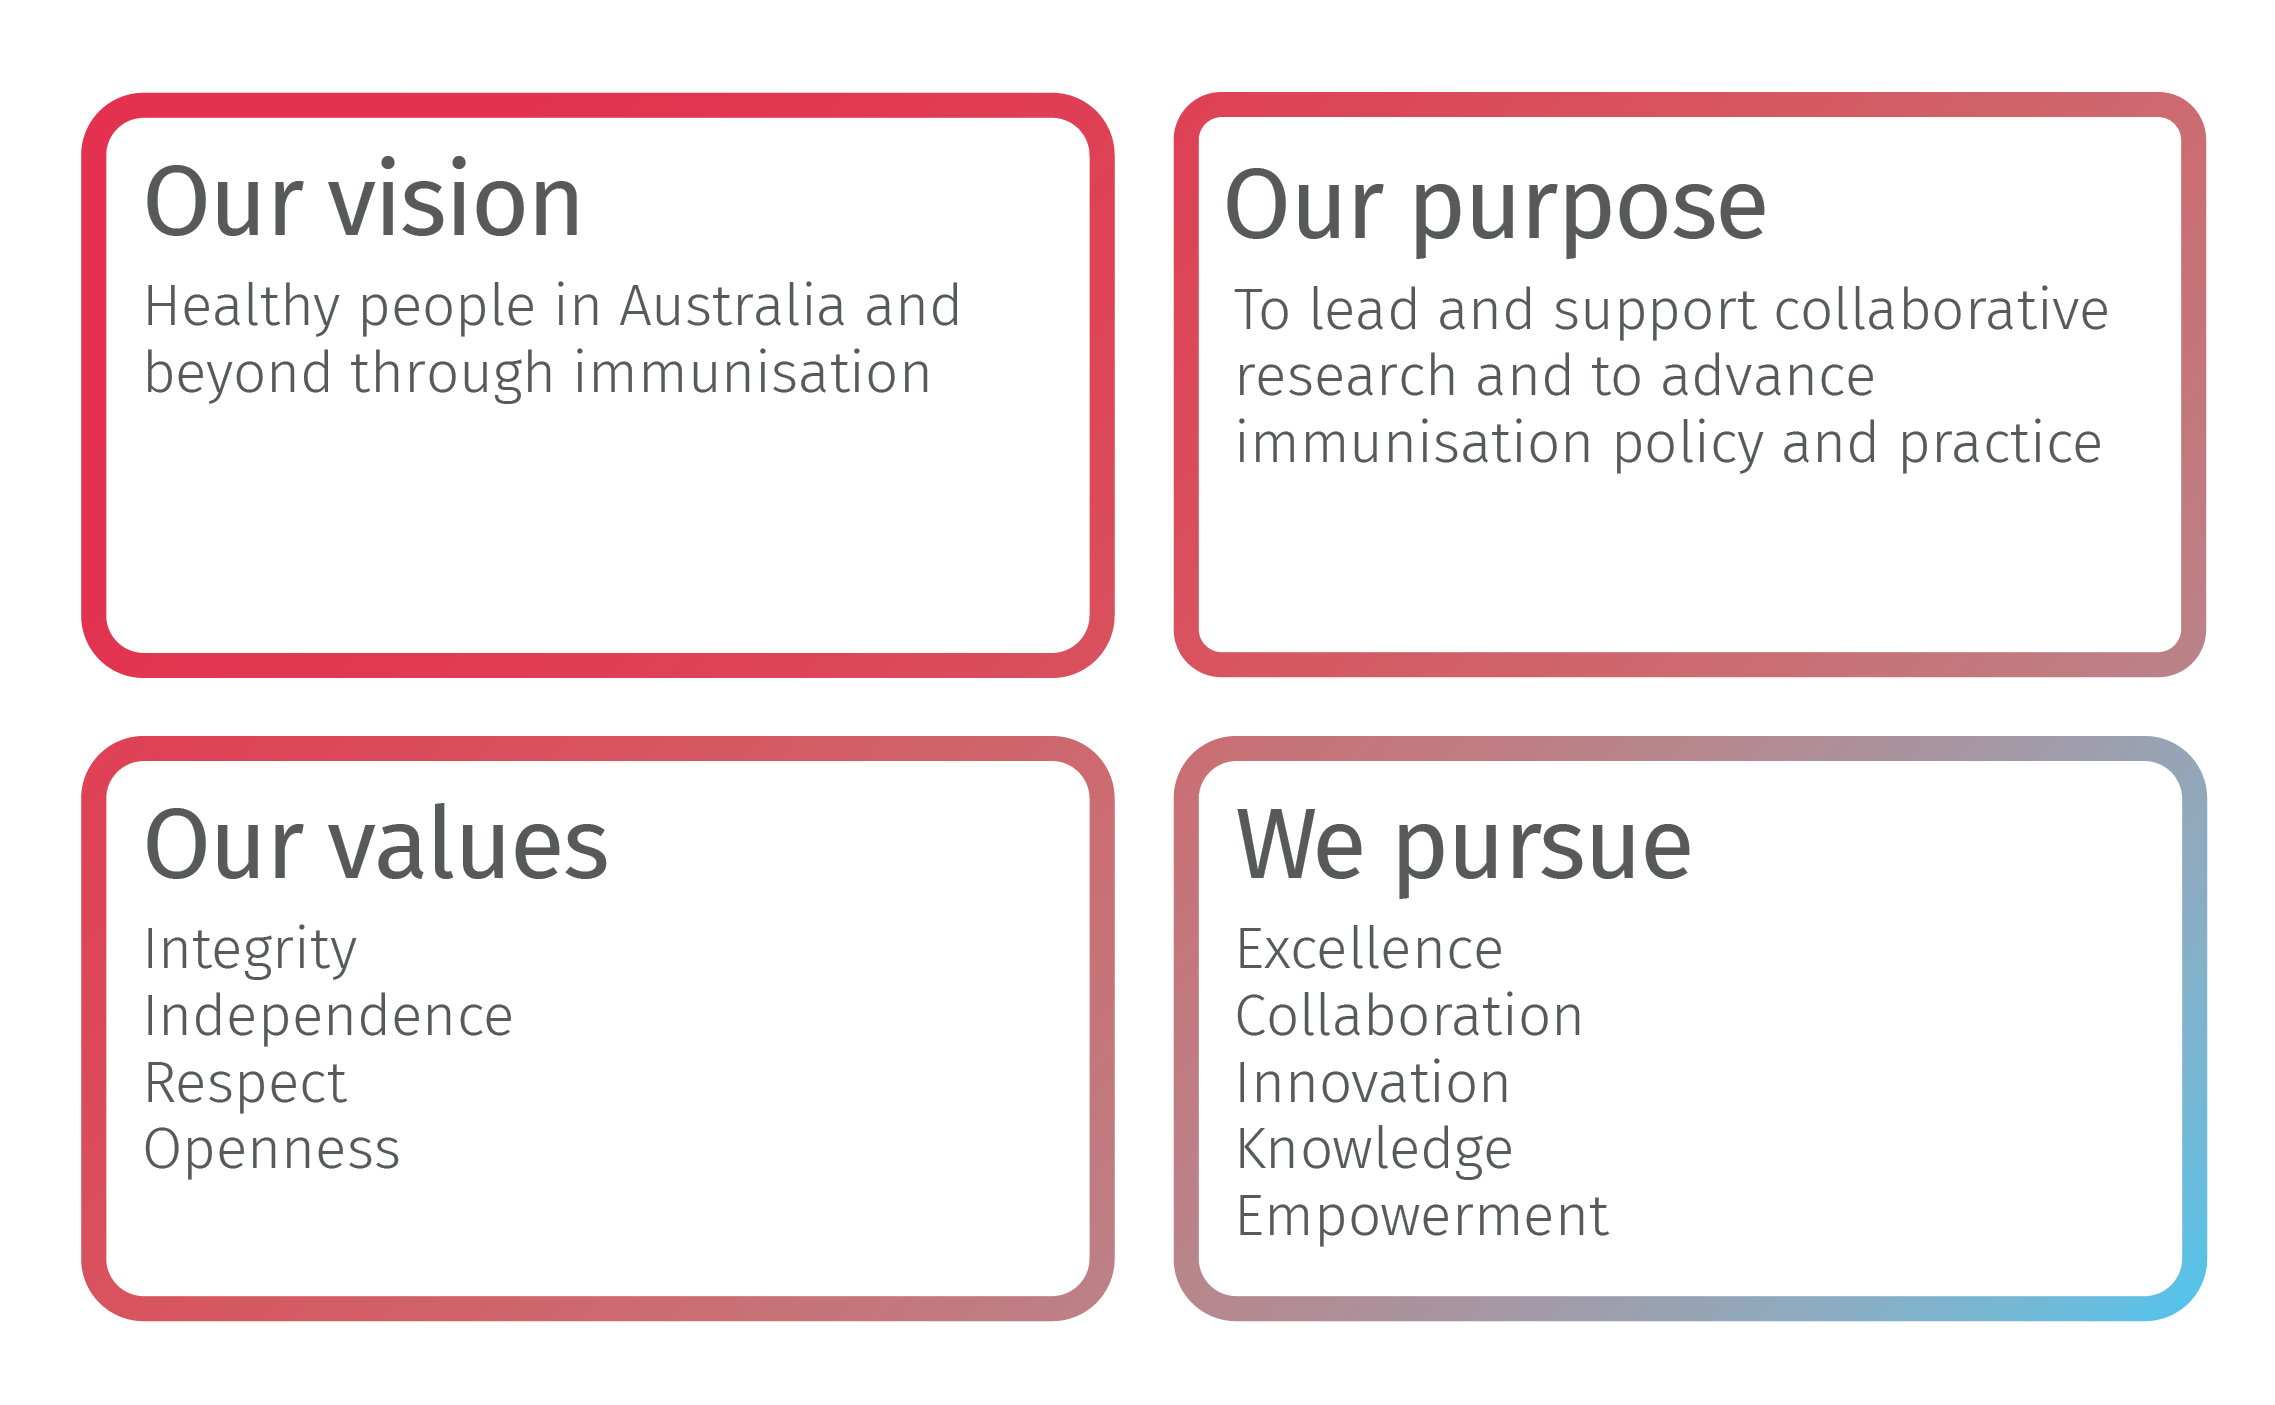 Our vision purpose and values